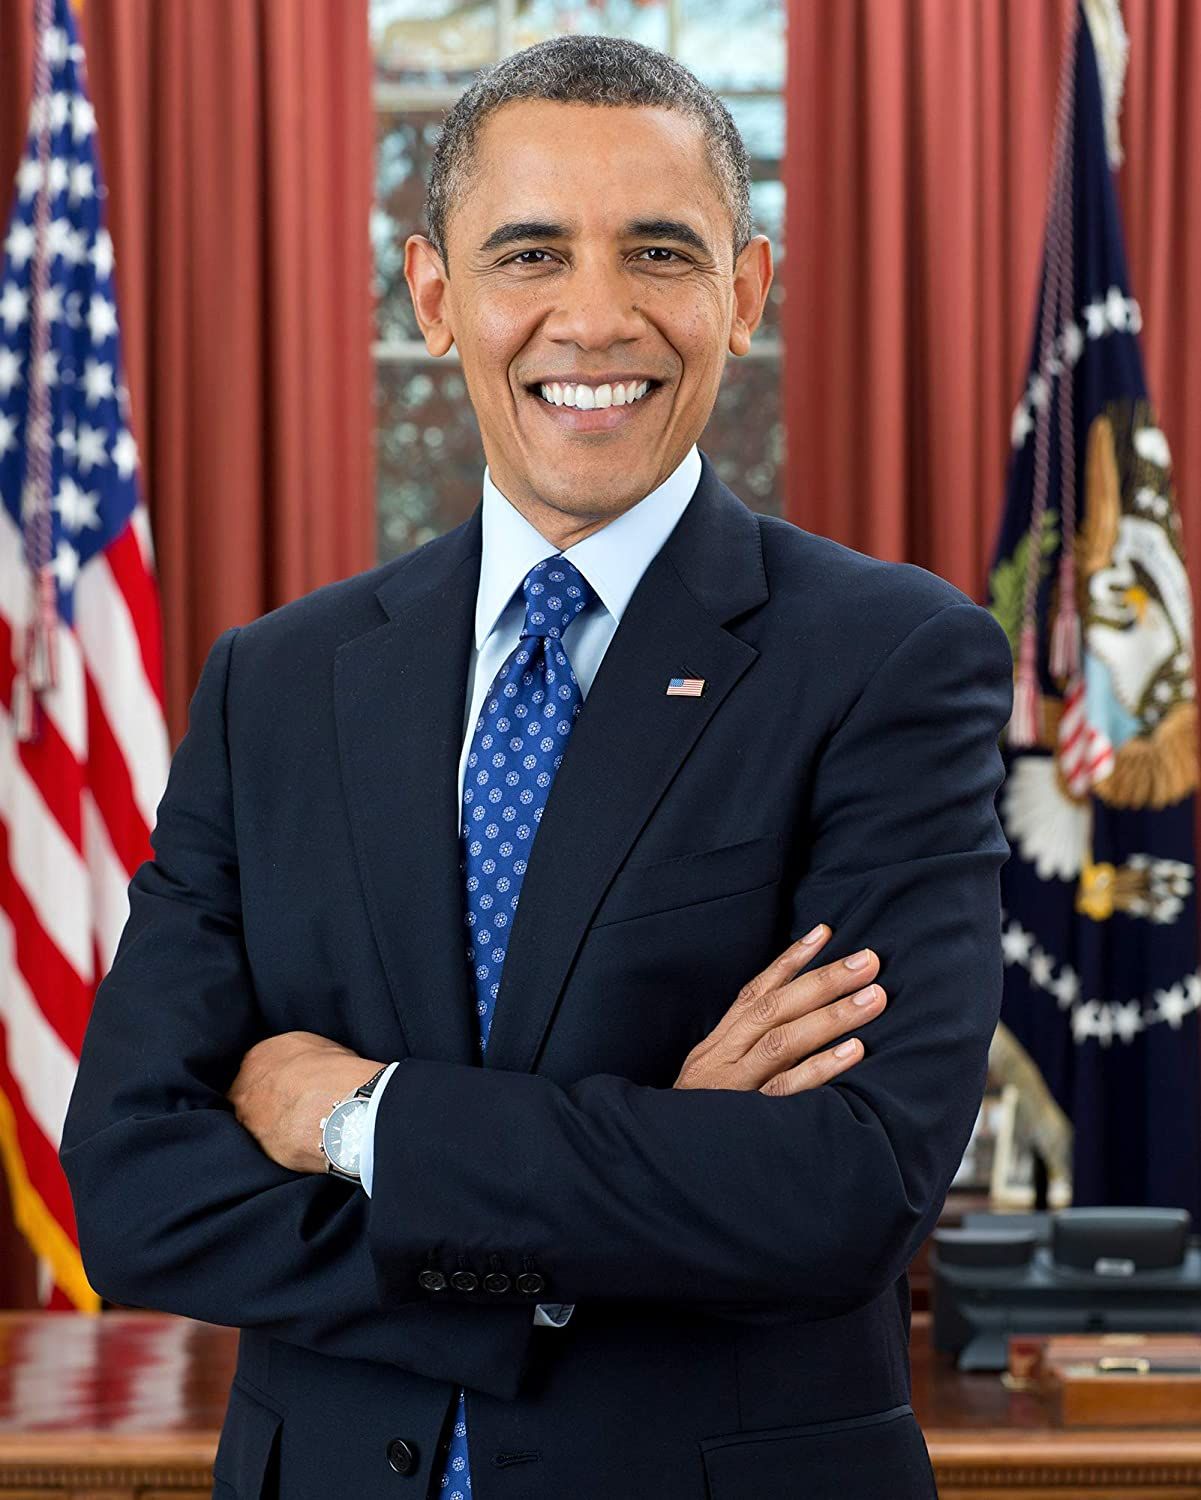 Barack Obama Photograph - Historical 2012 Artwork Pres In a Baltimore Mall popularity US from